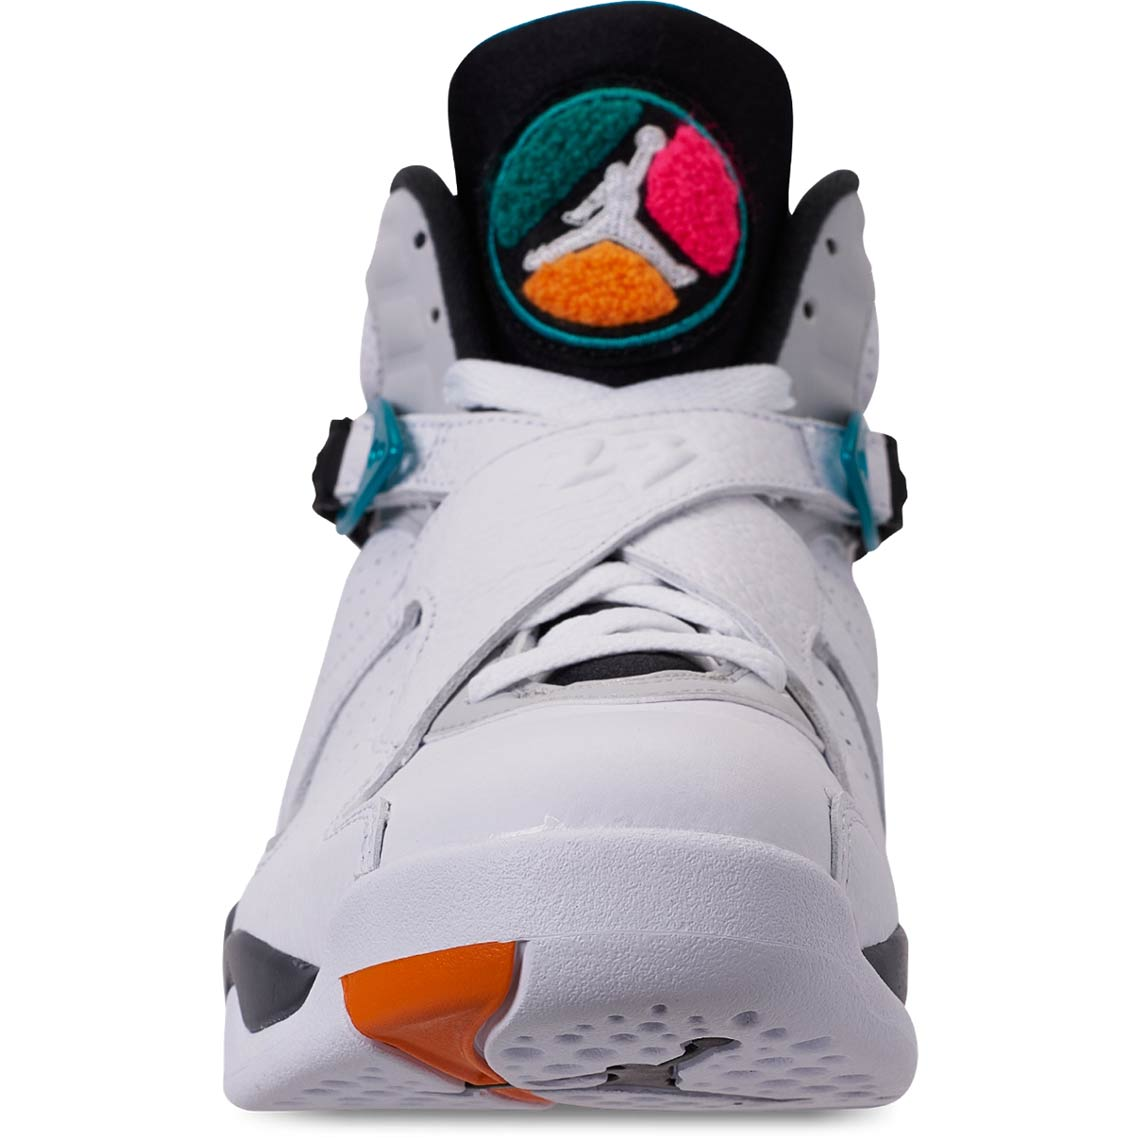 air jordan 8 south beach release date 6 - Air Jordan 8 South Beach Release Date